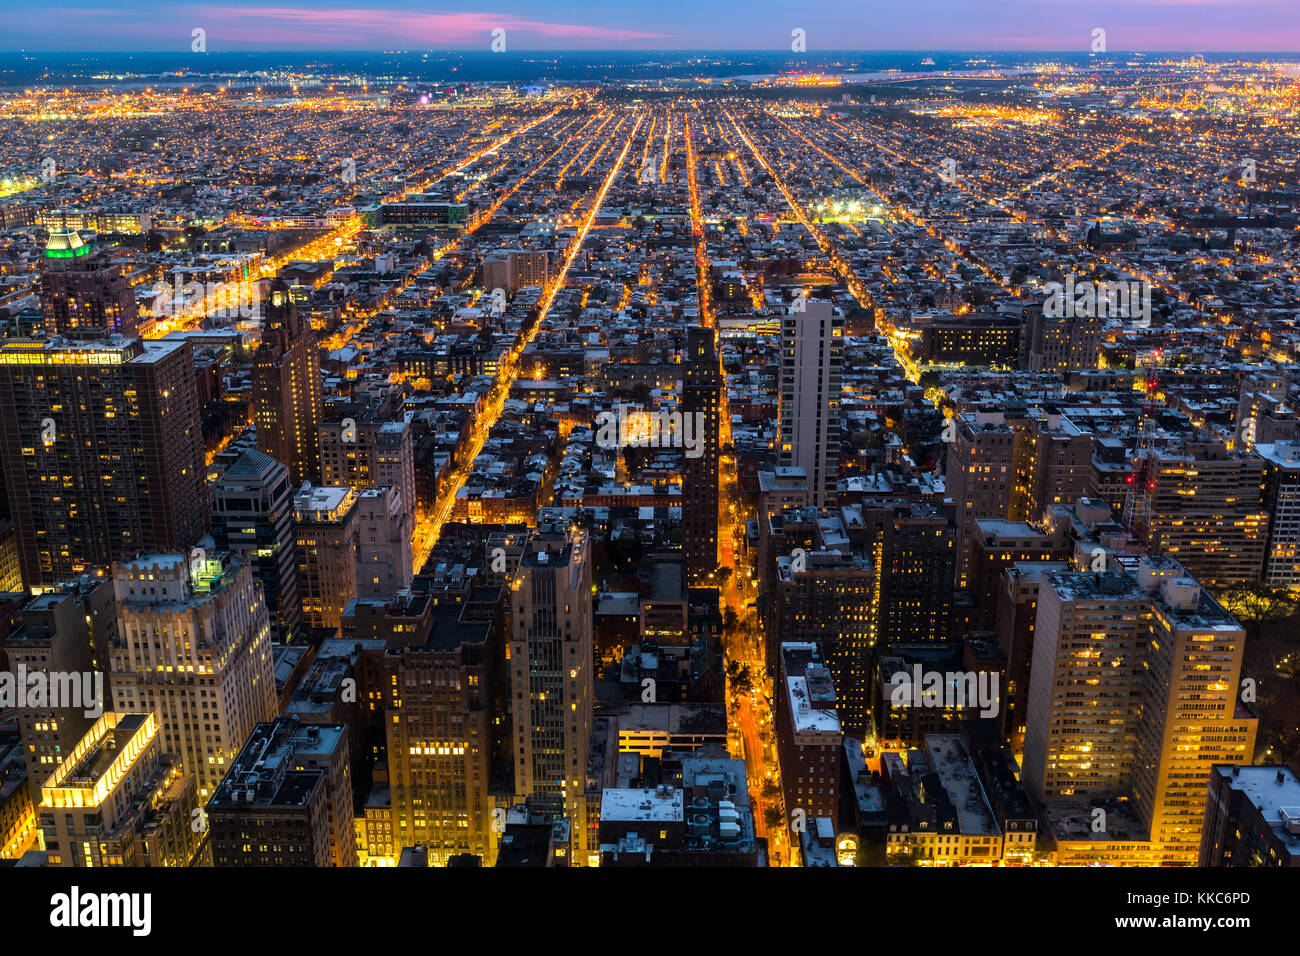 Aerial view of Philadelphia with city streets converging towards the edge of the metropolitan area - Stock Image